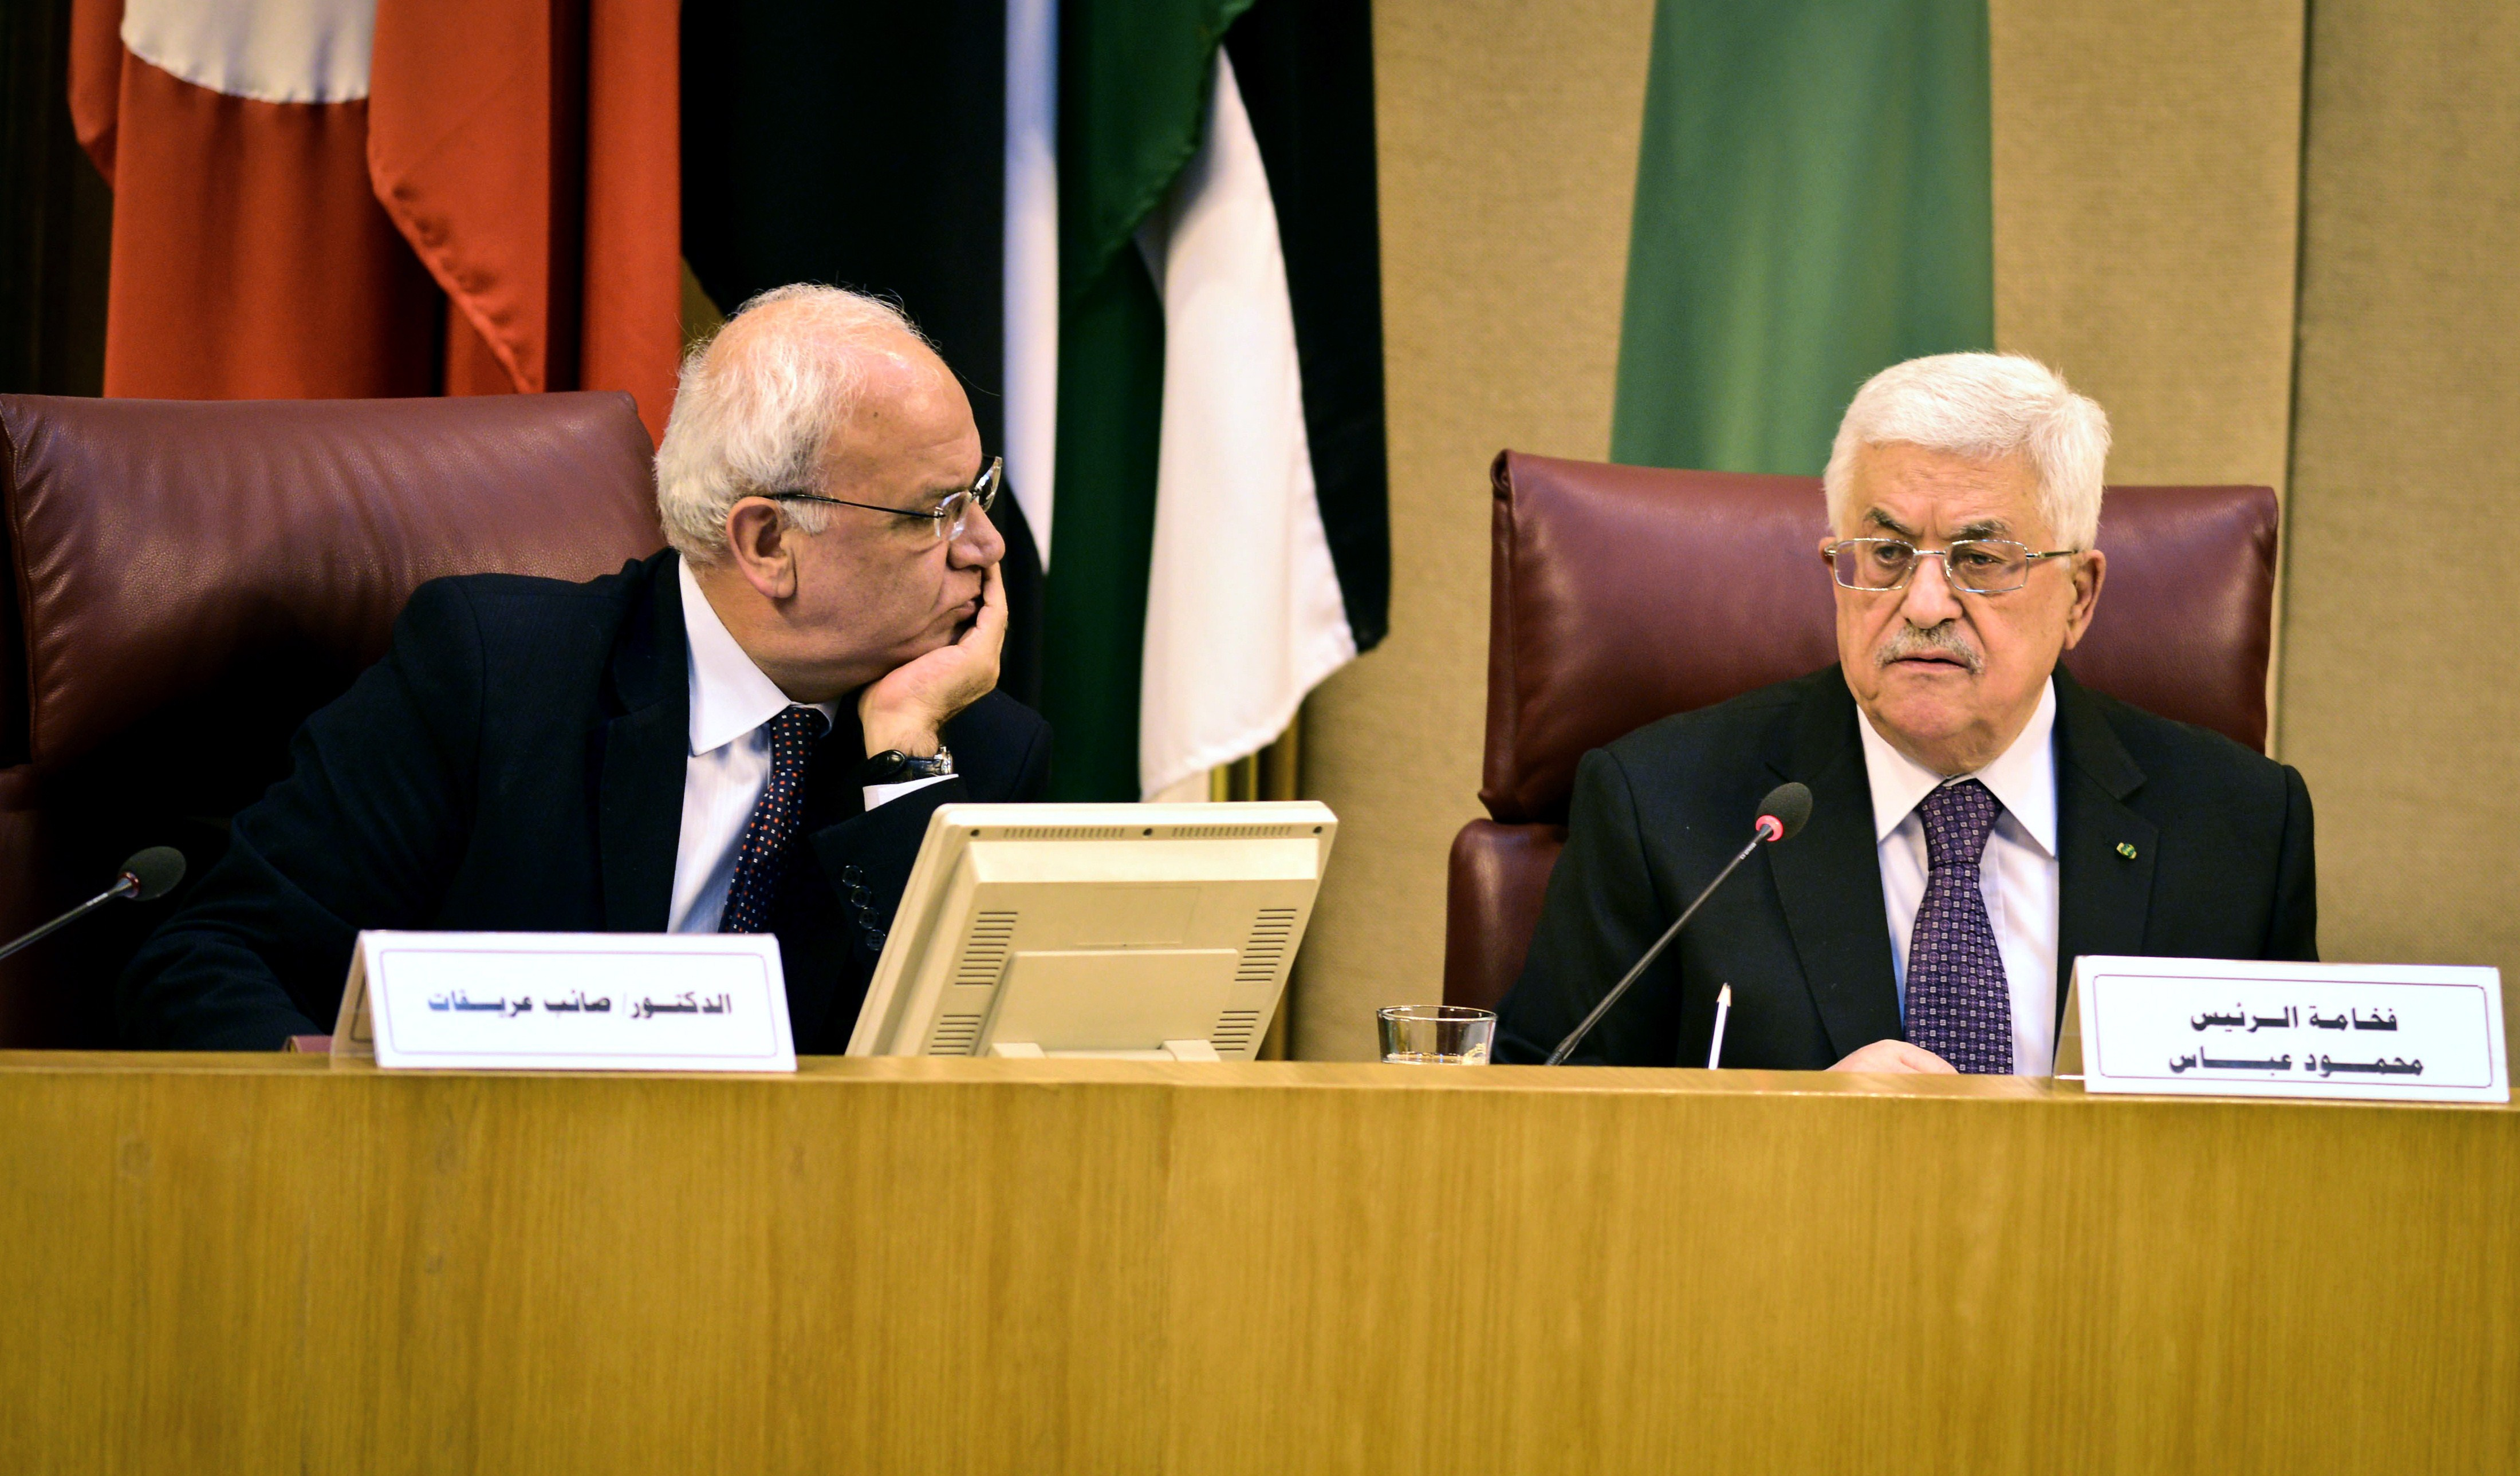 EGYPT-PALESTINIAN-CONFLICT-ARAB-DIPLOMACY